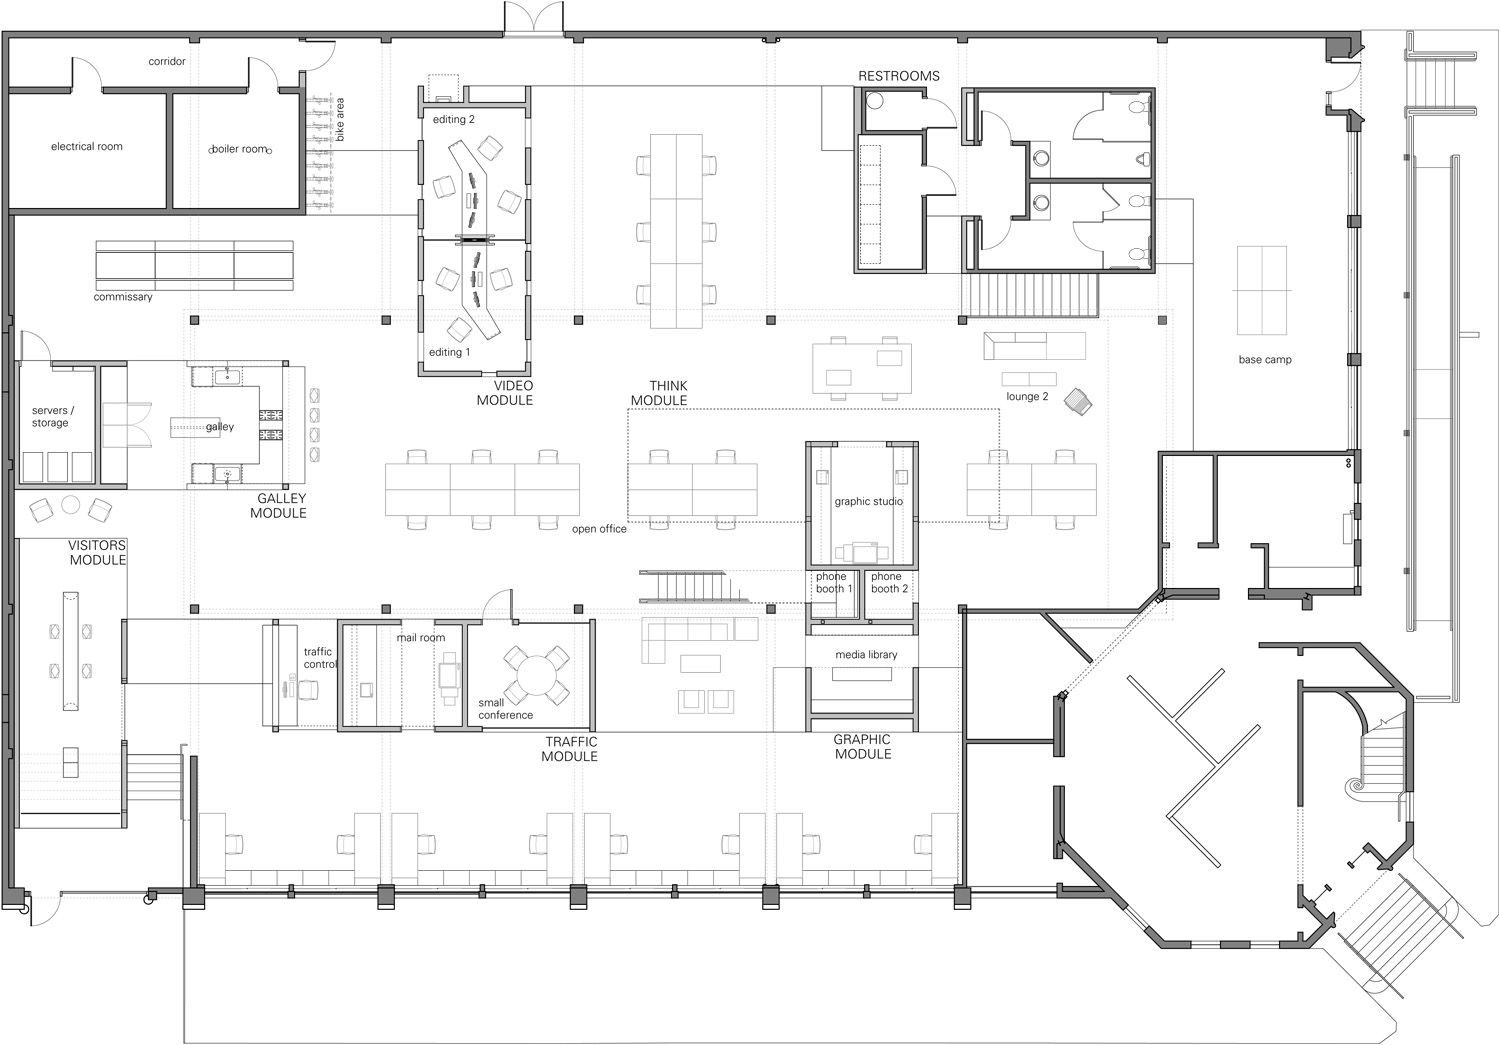 North skylab architecture office floor plan office for Office plan design